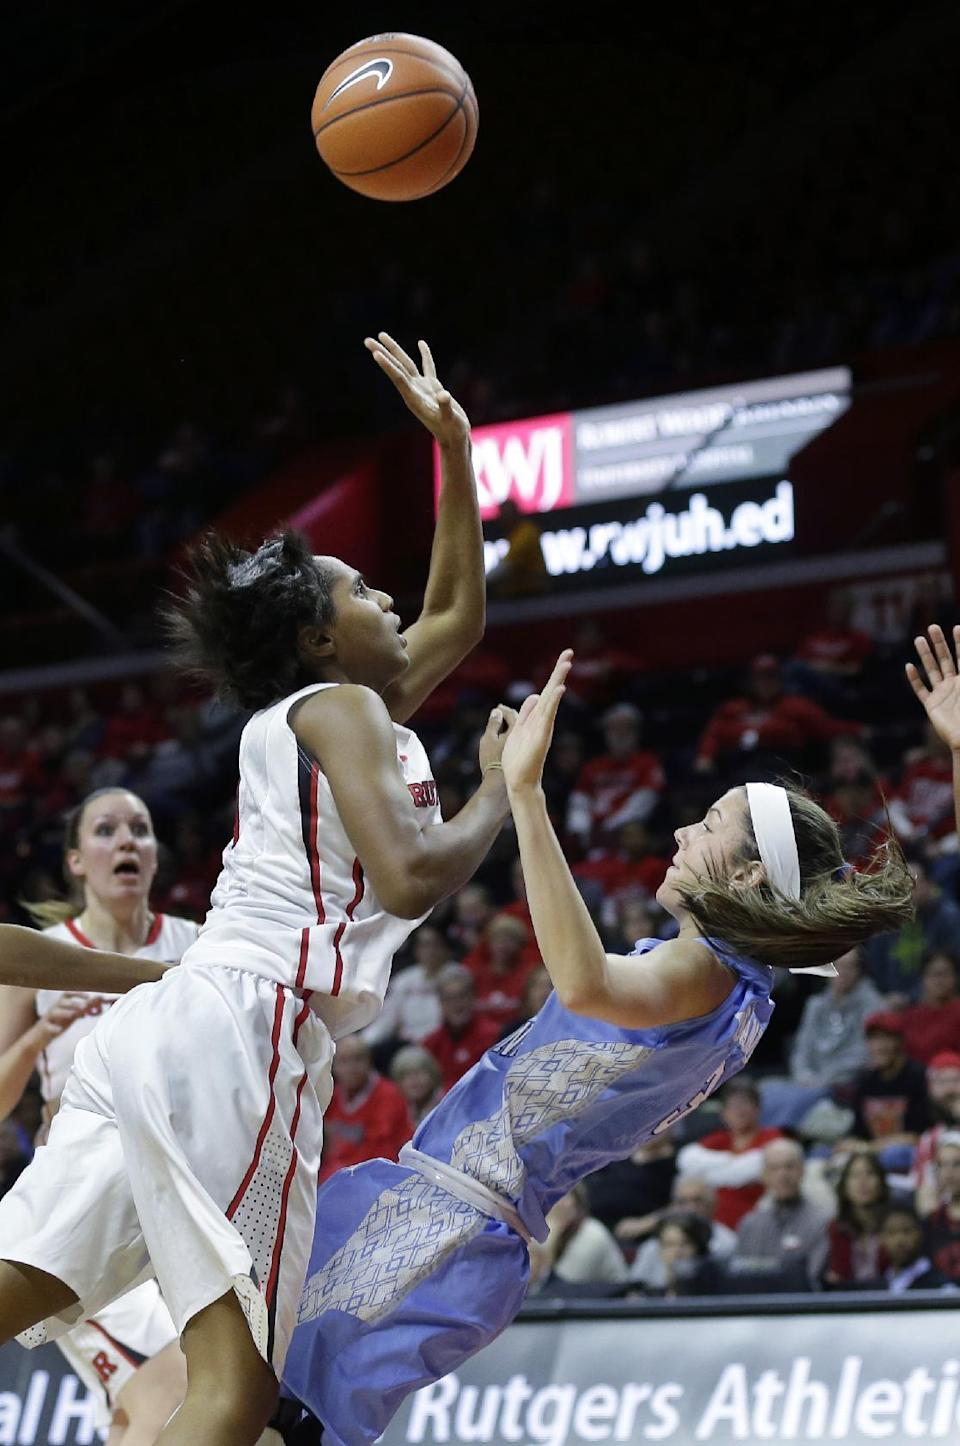 Rutgers' Tyler Scaife, front left, shoots as she collides with North Carolina's Megan Buckland during the first half of an NCAA college basketball game Thursday, Dec. 4, 2014, in Piscataway, N.J. (AP Photo/Mel Evans)